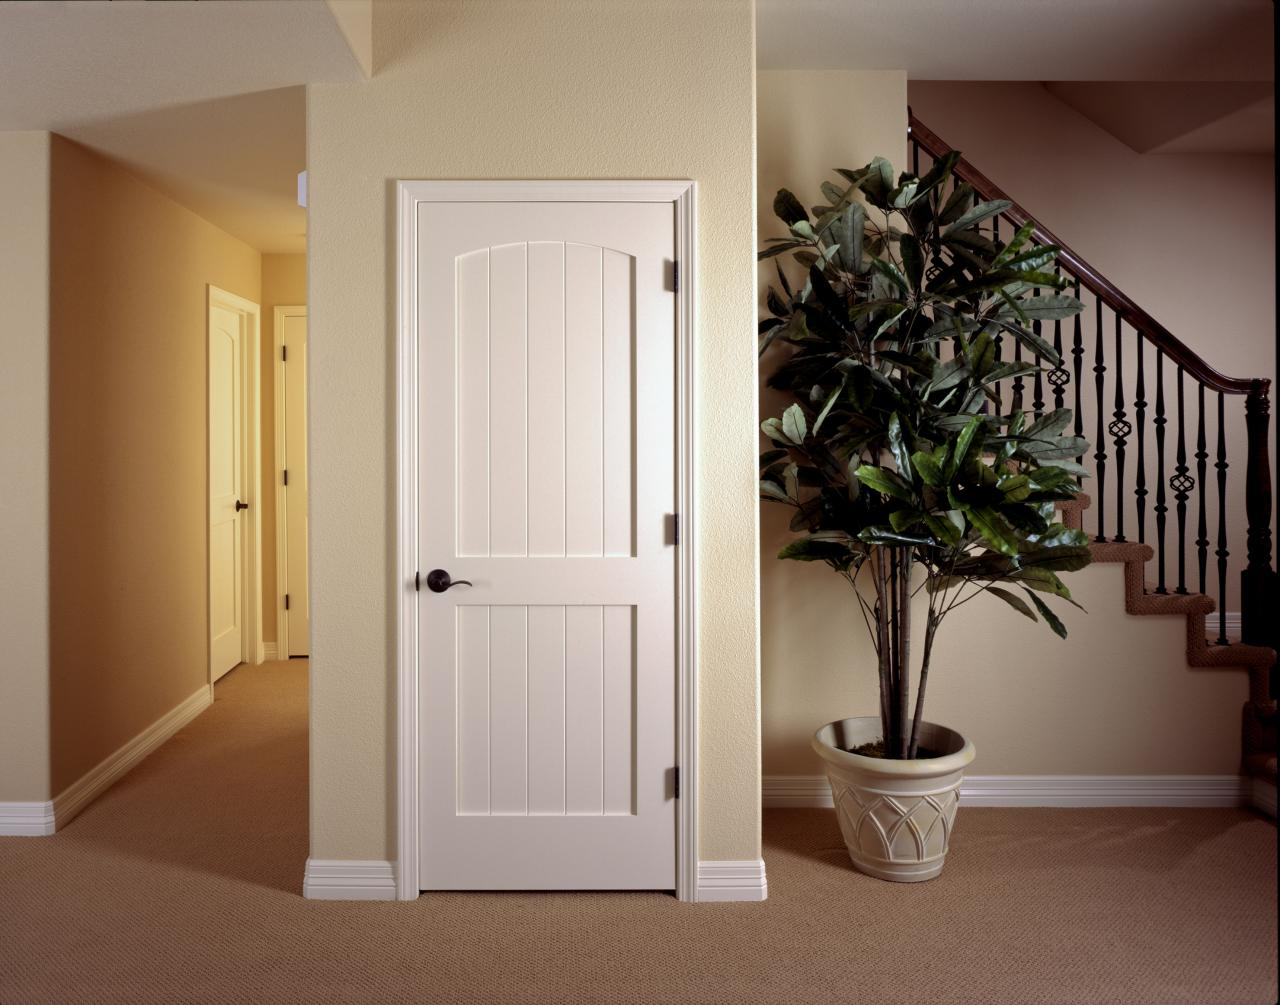 Paint grade mdf interior doors trustile custom doors by doors mdf interior door trustile v grove series planetlyrics Choice Image